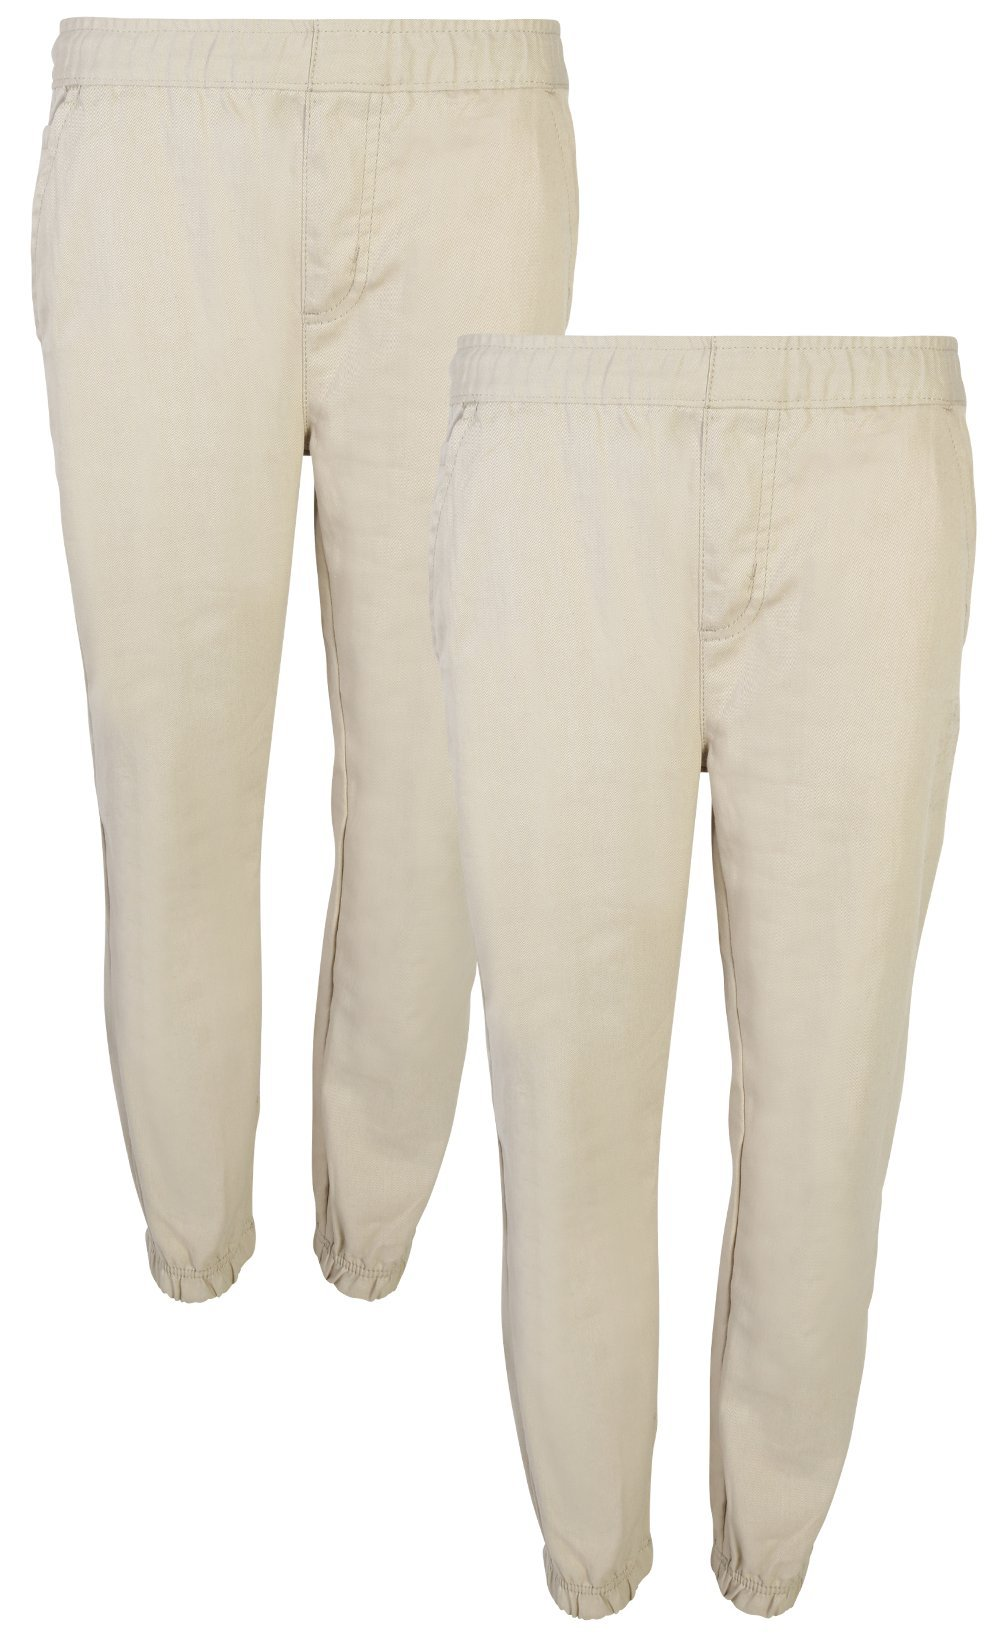 Beverly Hills Polo Club Boys School Uniform 2 Pack Twill Pull-On Jogger Pant with Adjustable Waist, Khaki, 14' by Beverly Hills Polo Club (Image #1)